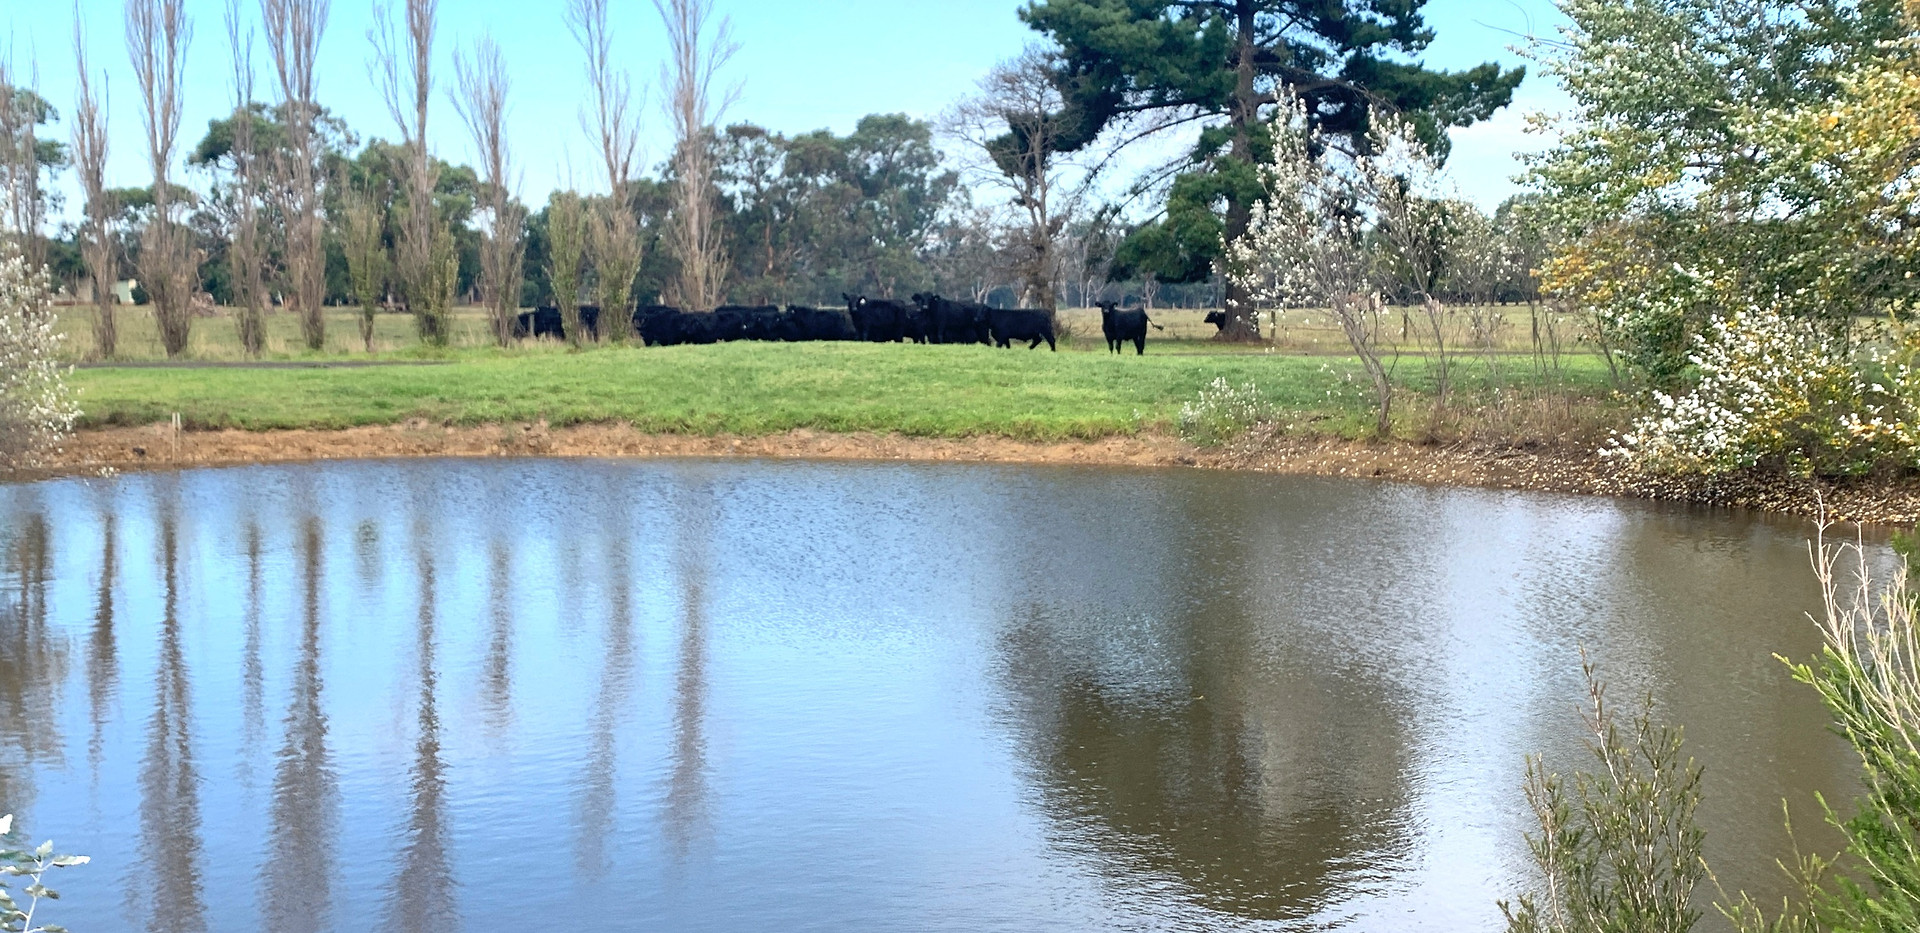 The farm dam, fenced away from the house.